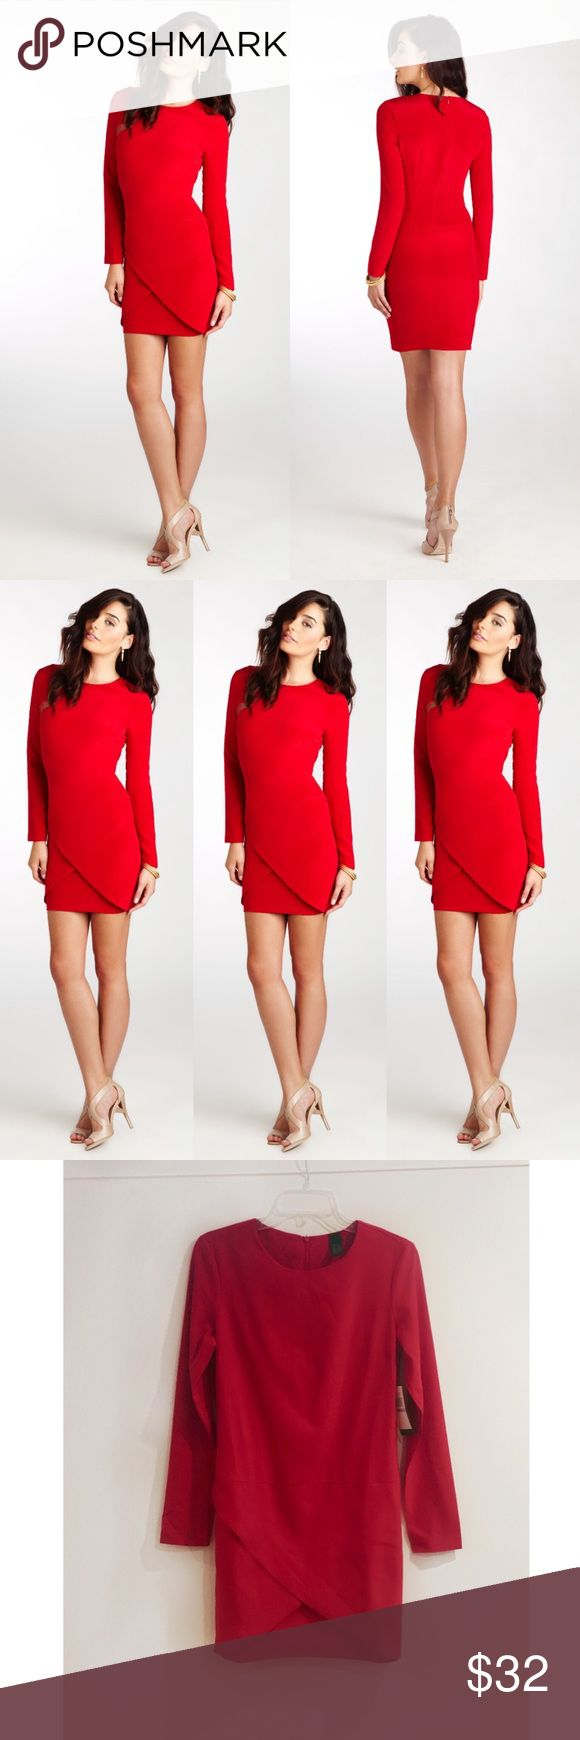 NWT Red Tulip Hem Long Sleeved Sexy Mini Dress Brand-new with tags! Label by Five Twelve by ECI. Red Tulip Hem Long Sleeved Sexy Mini Dress. AVAILABLE IN SIZES 4,6,8. Features a back zip and hits above the knee. 95/5 poly/spandex. You want this dress perfect for girls night out or date night. 15% off when you buy 3 or more items from my closet. Label by 512 Dresses Mini